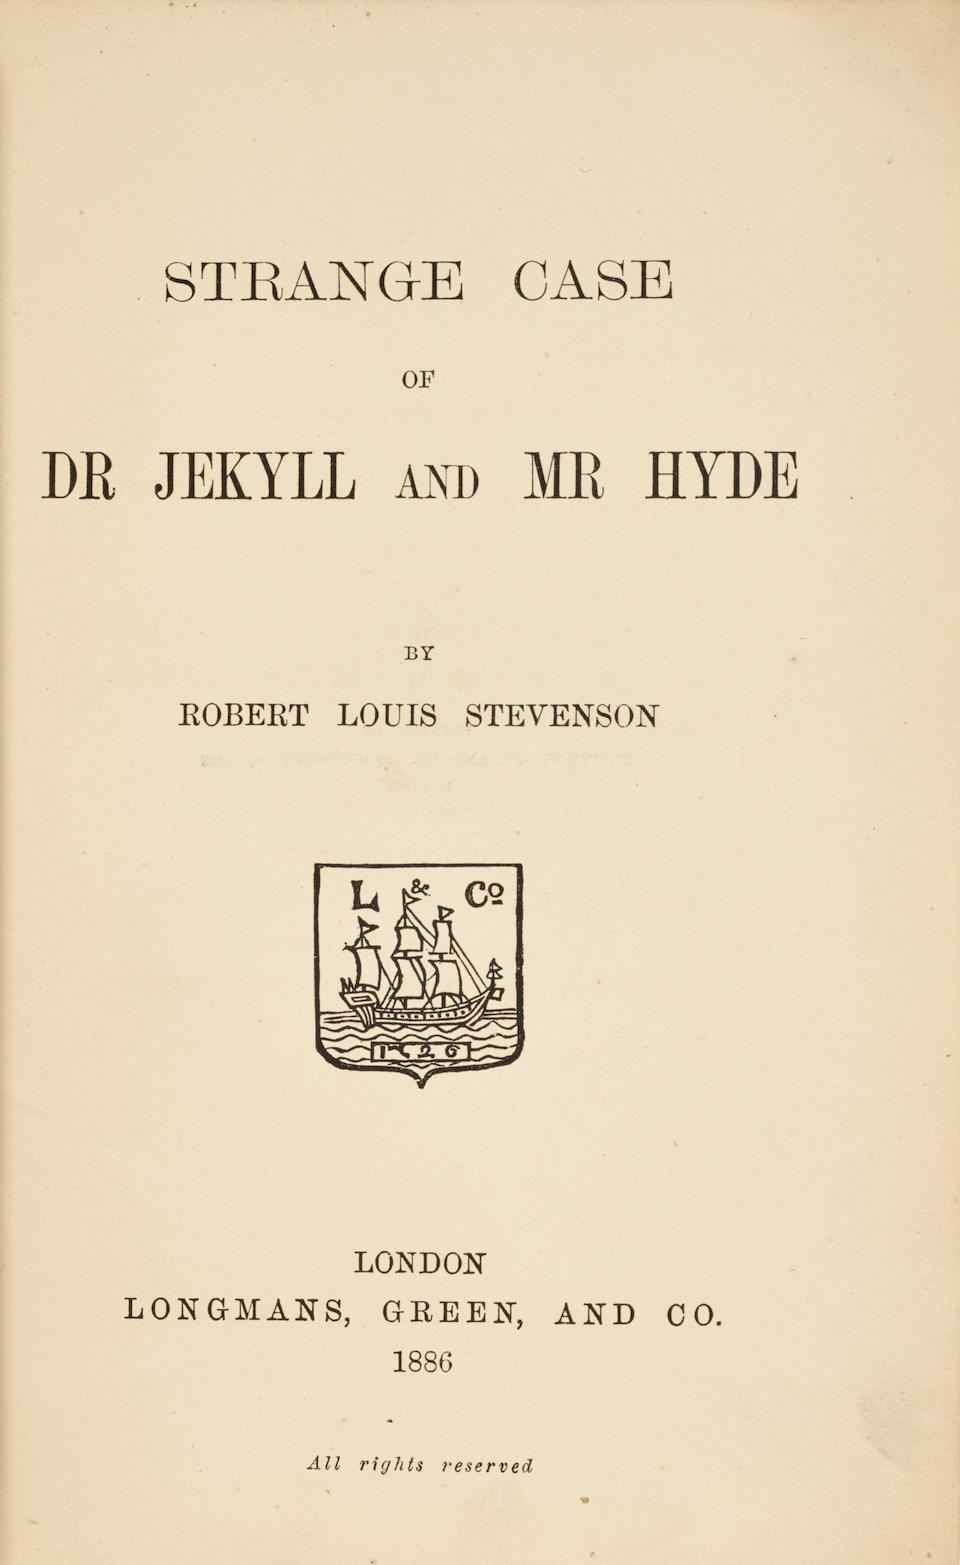 STEVENSON, ROBERT LOUIS. 1850-1894. Strange Case of Dr. Jekyll and Mr. Hyde. London: Longman, Green, and Co., 1885 [corrected in ink to 1886].